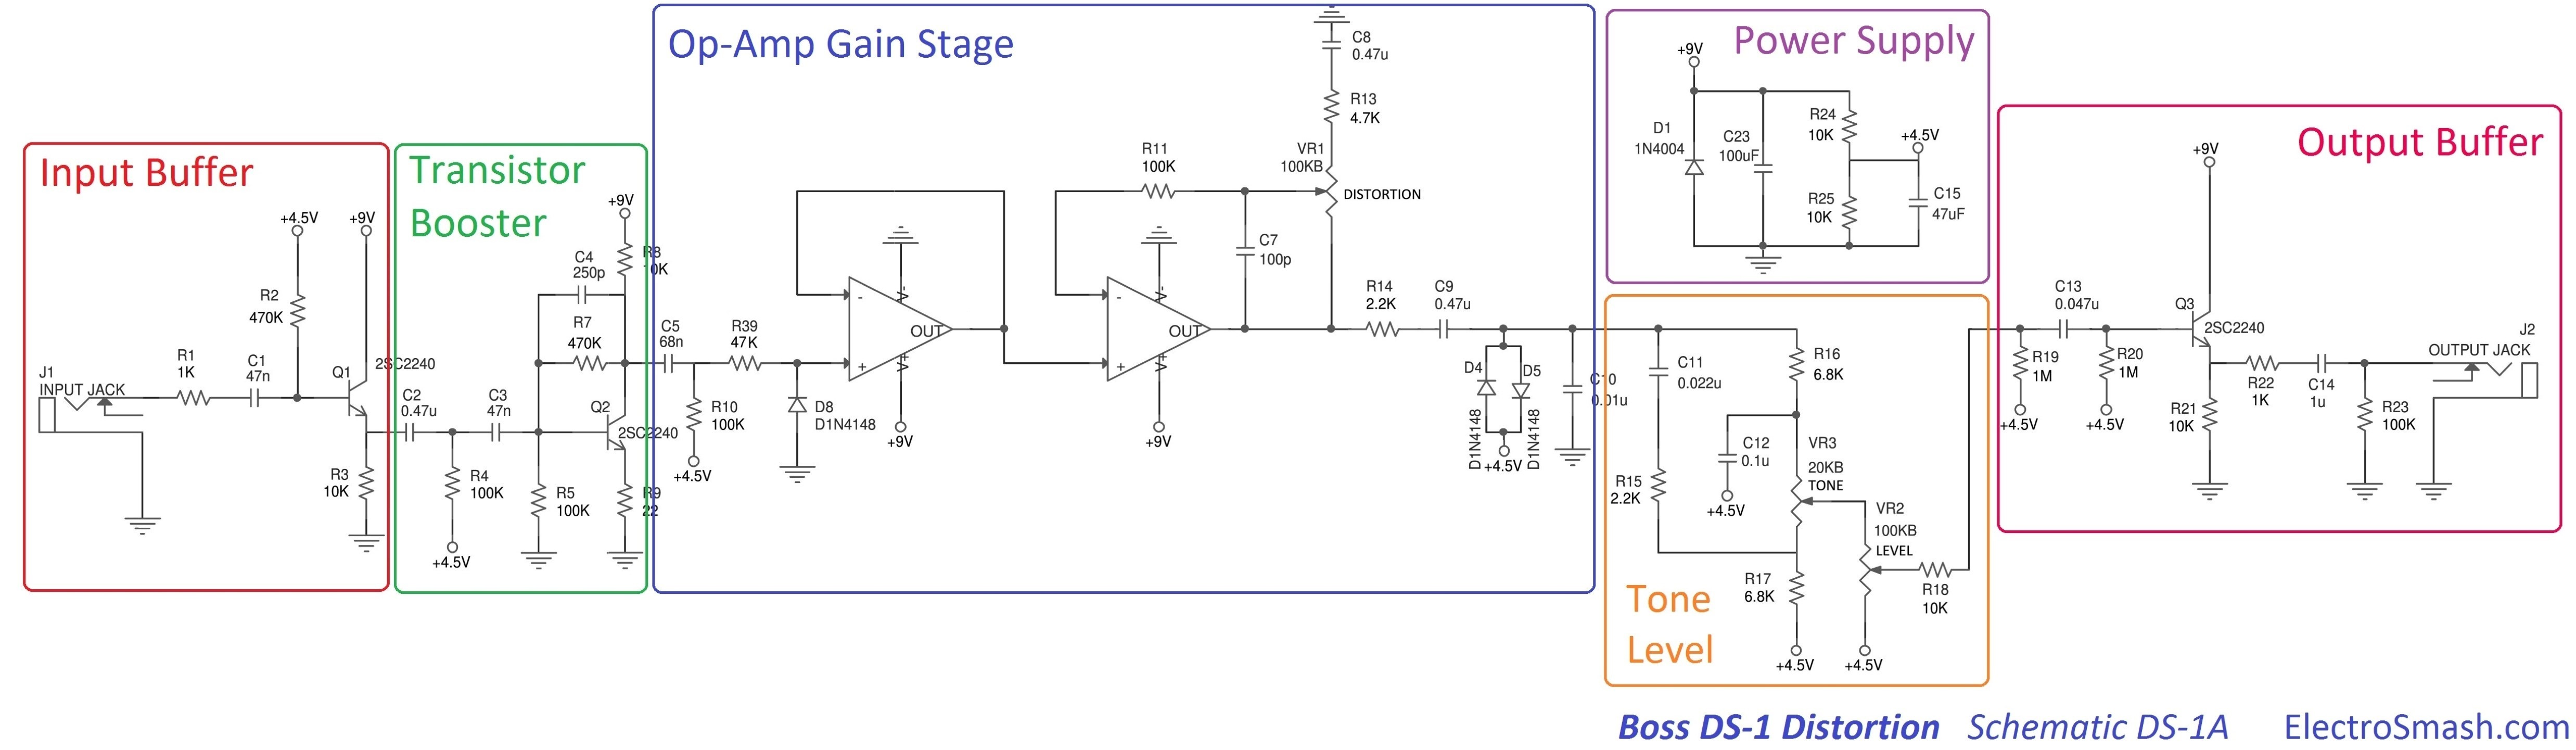 boss ds1 distortion schematic parts electrosmash boss ds1 distortion analysis wiring diagram for distortion pedal at fashall.co